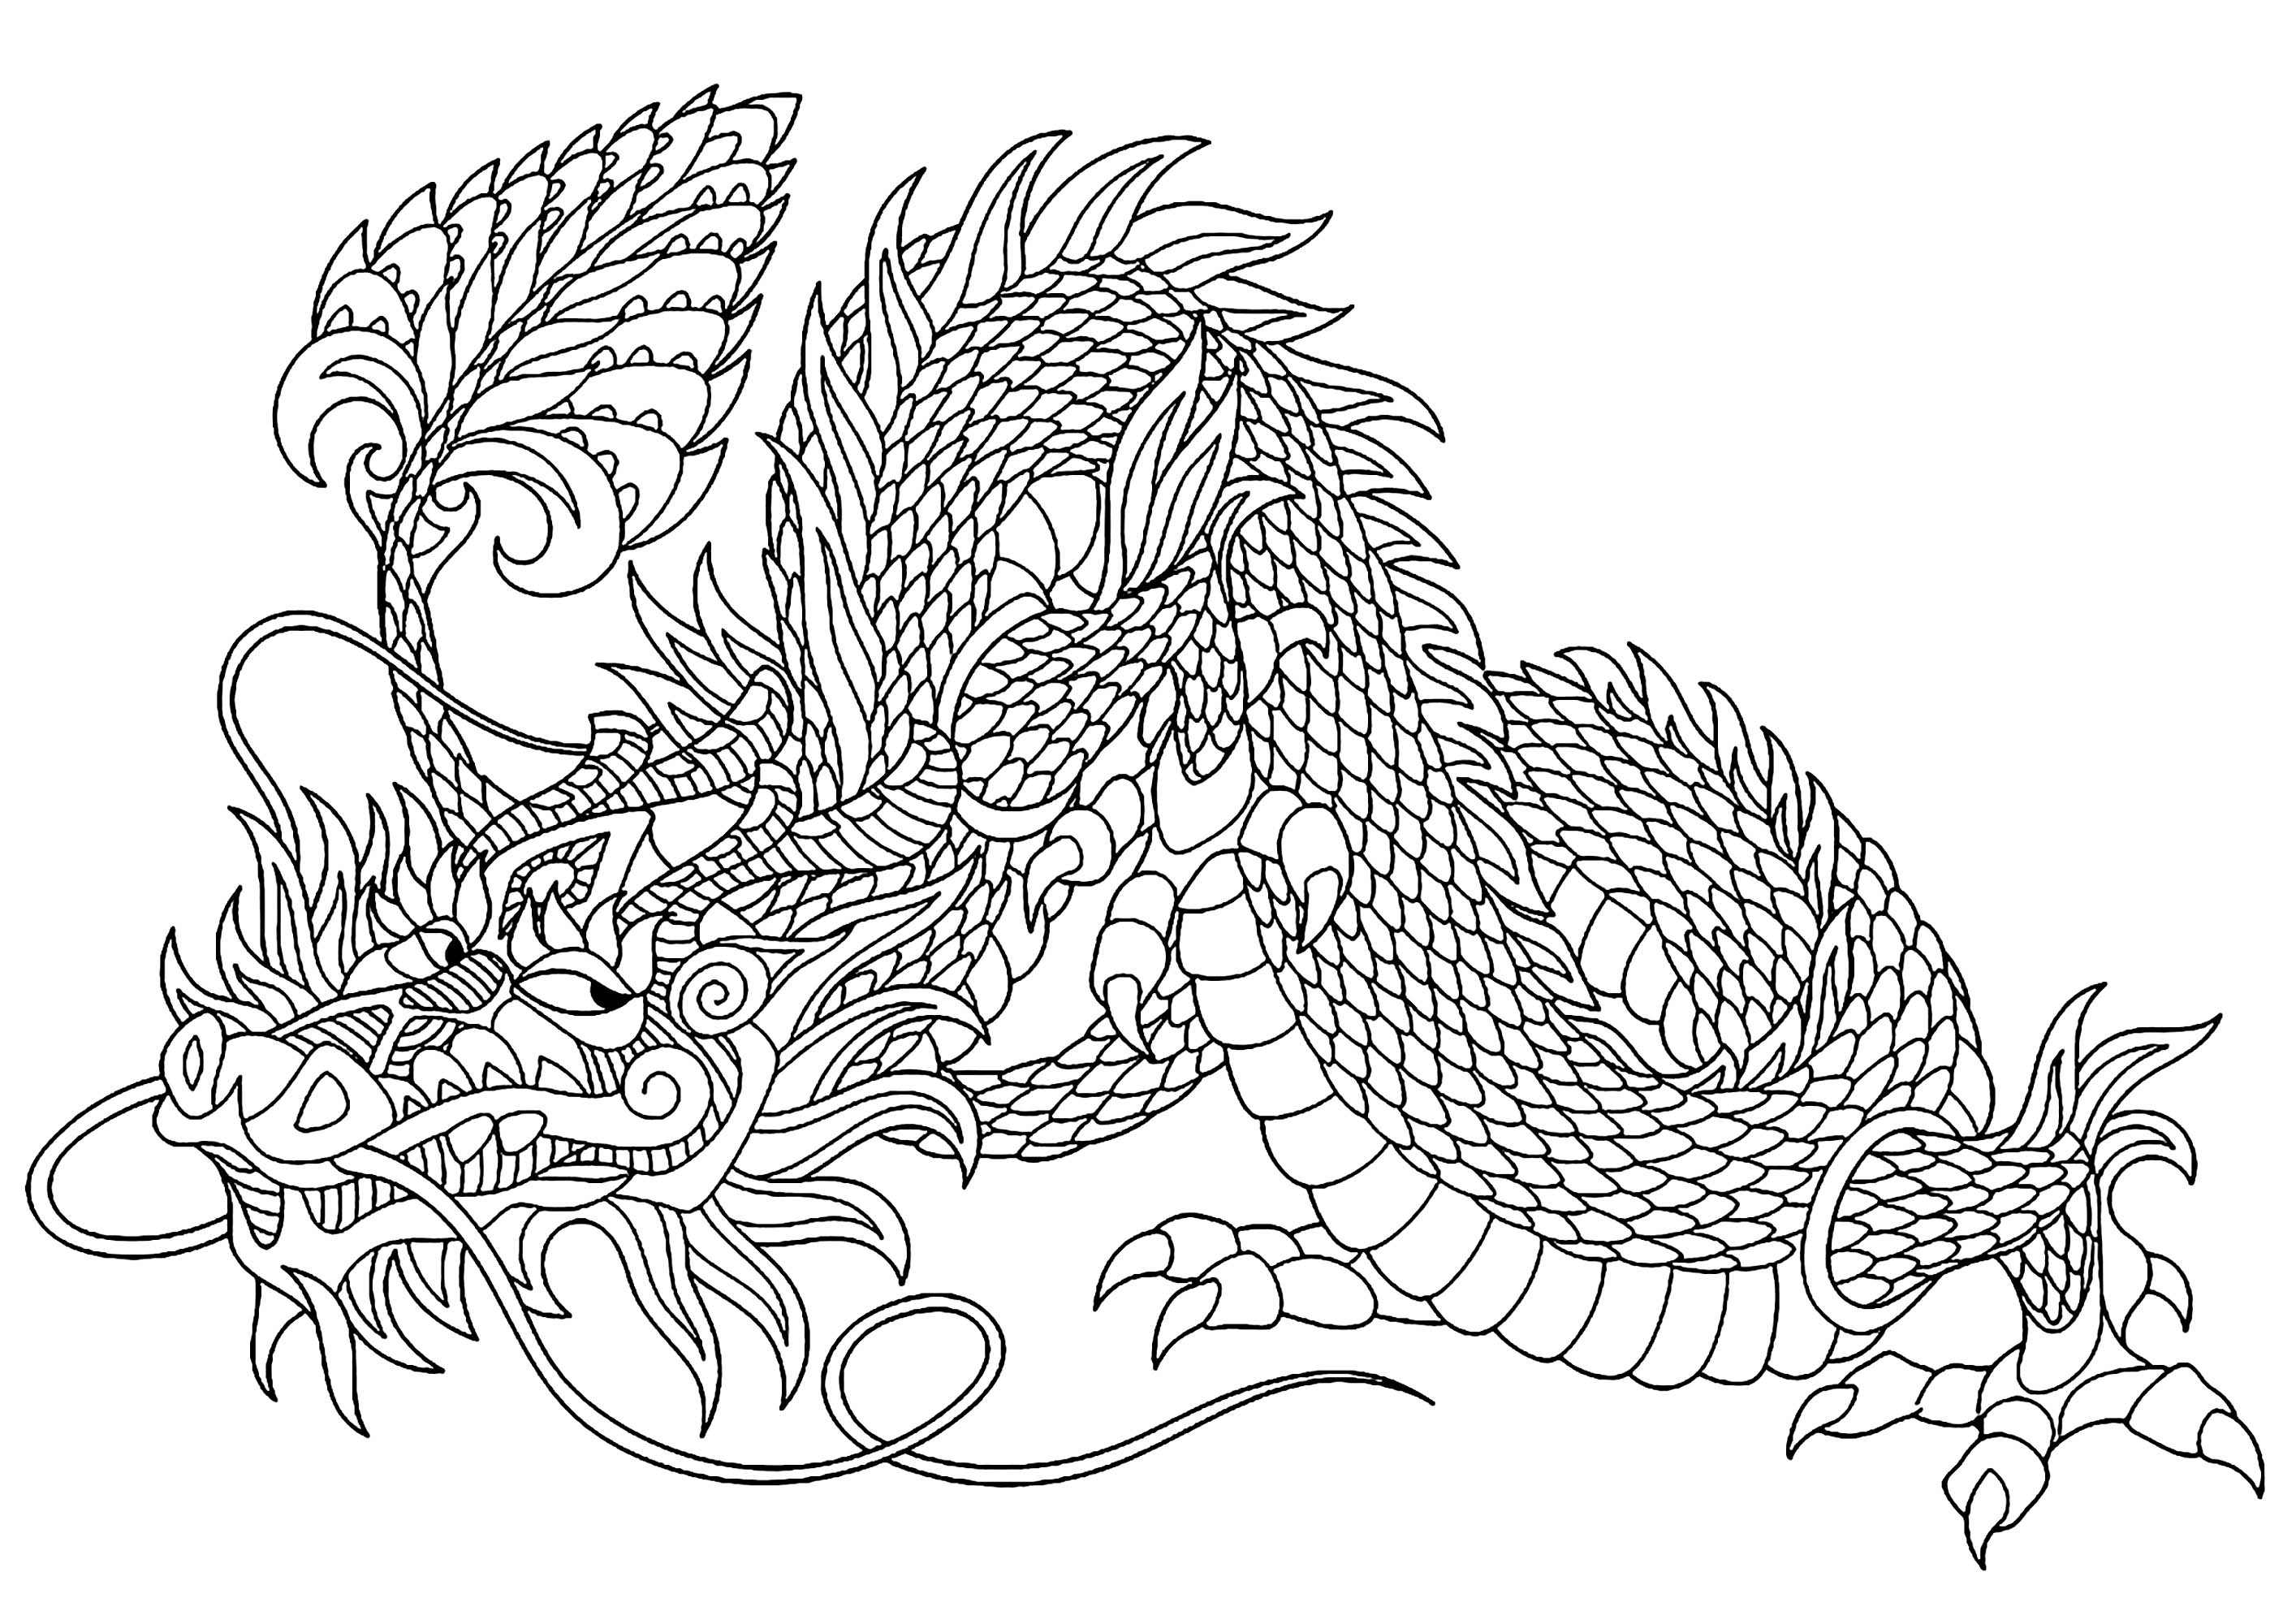 Dragon malicieux dragons coloriages difficiles pour - Coloriages de dragons ...